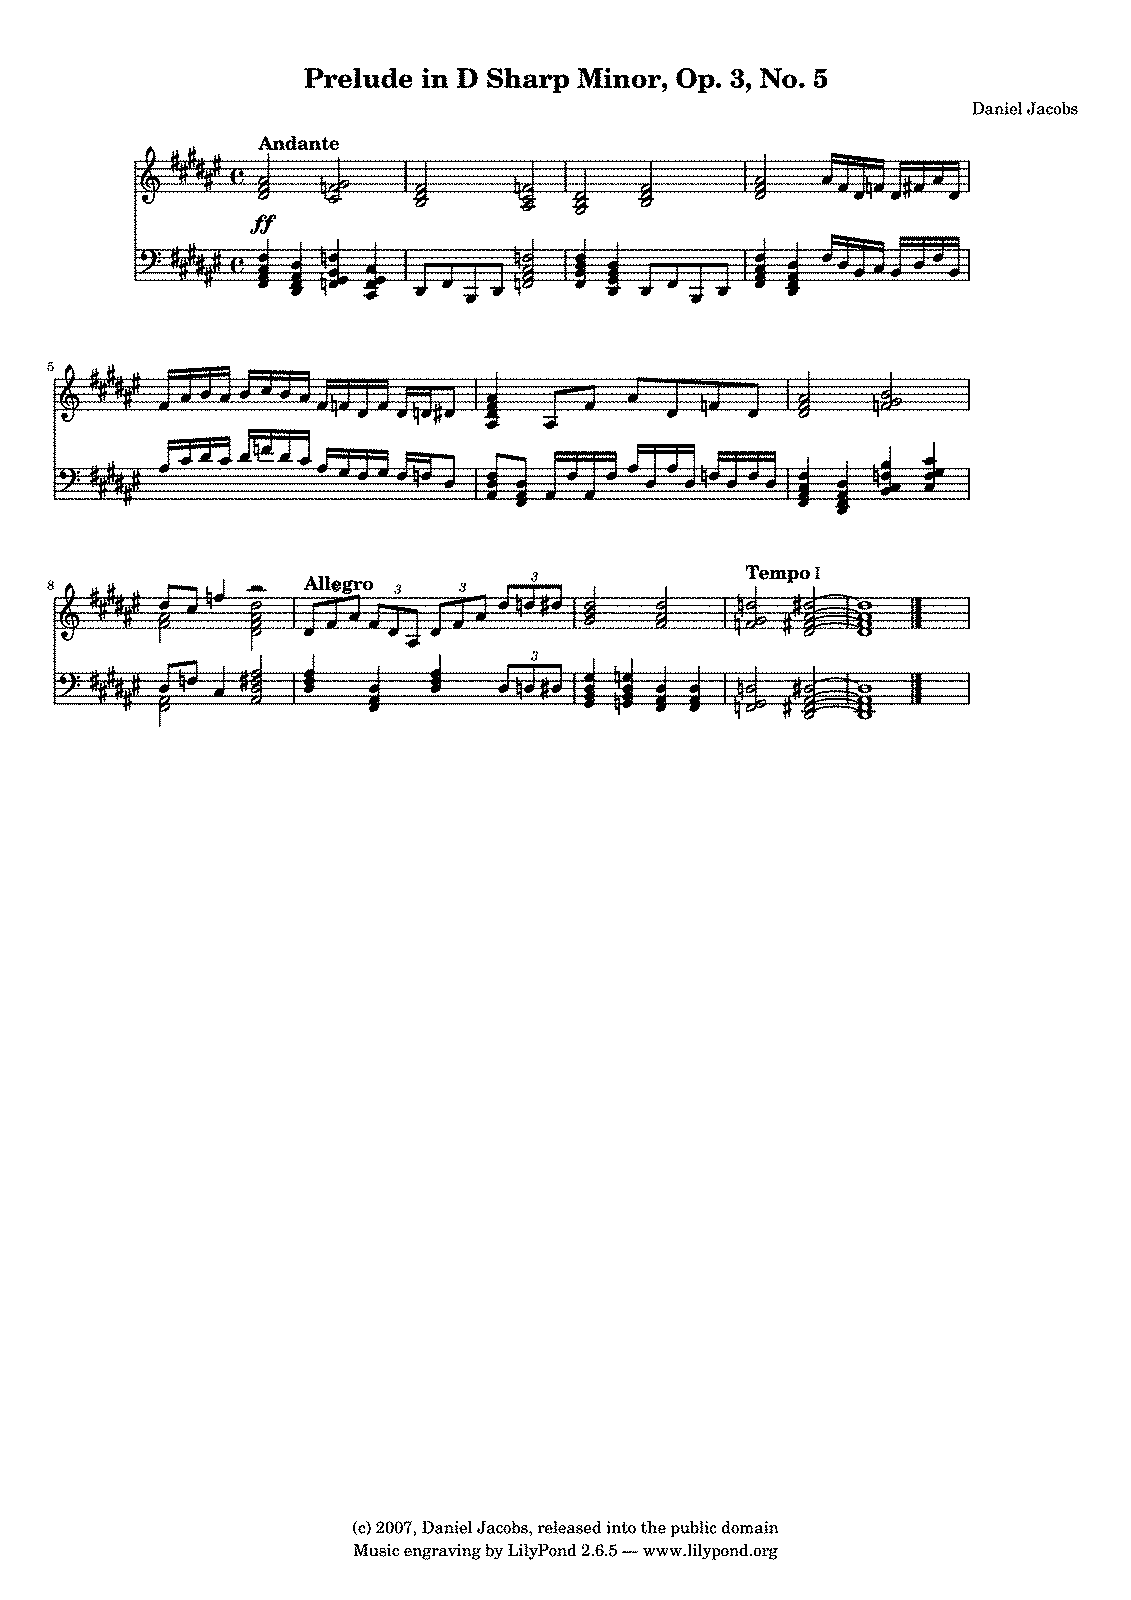 Prelude in D Sharp Minor.pdf